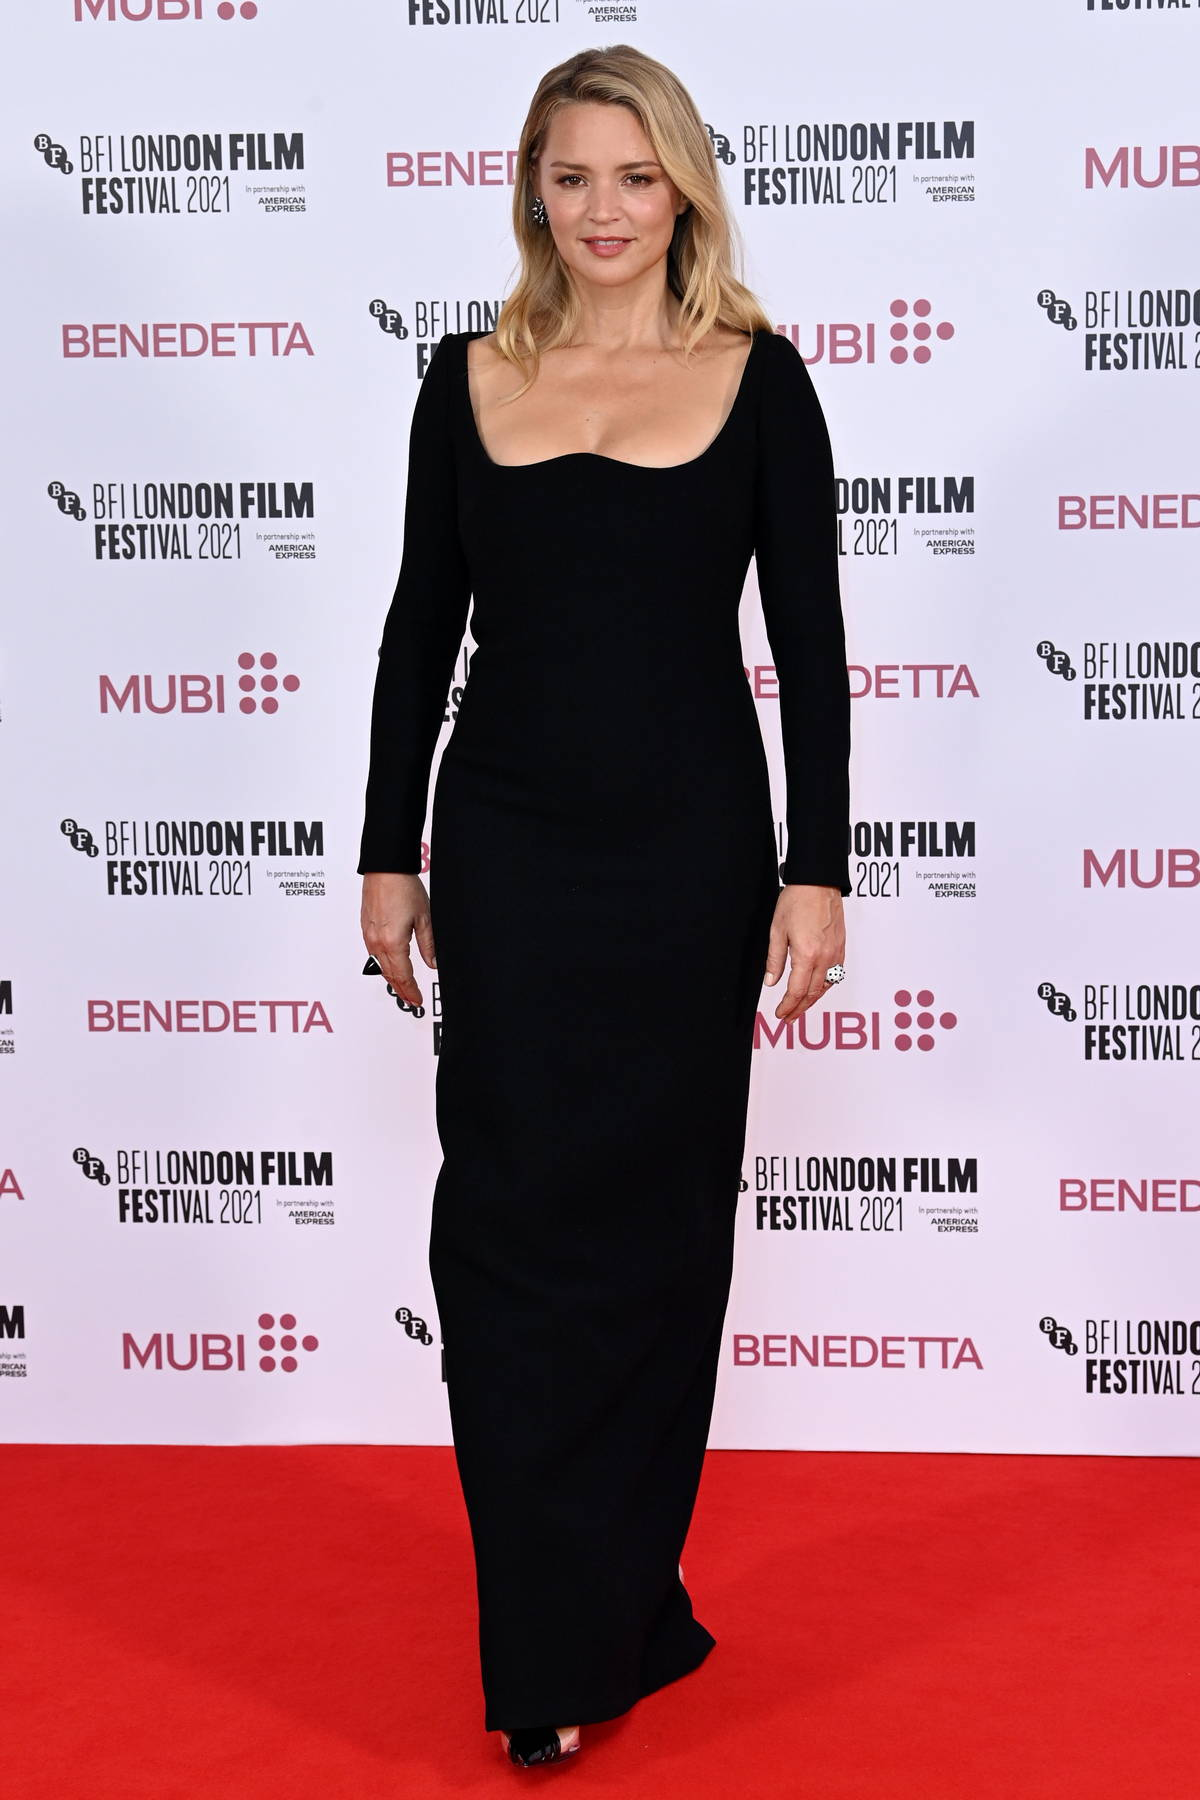 Virginie Efira attends the UK Premiere of 'Benedetta' during the 65th BFI London Film Festival in London, UK